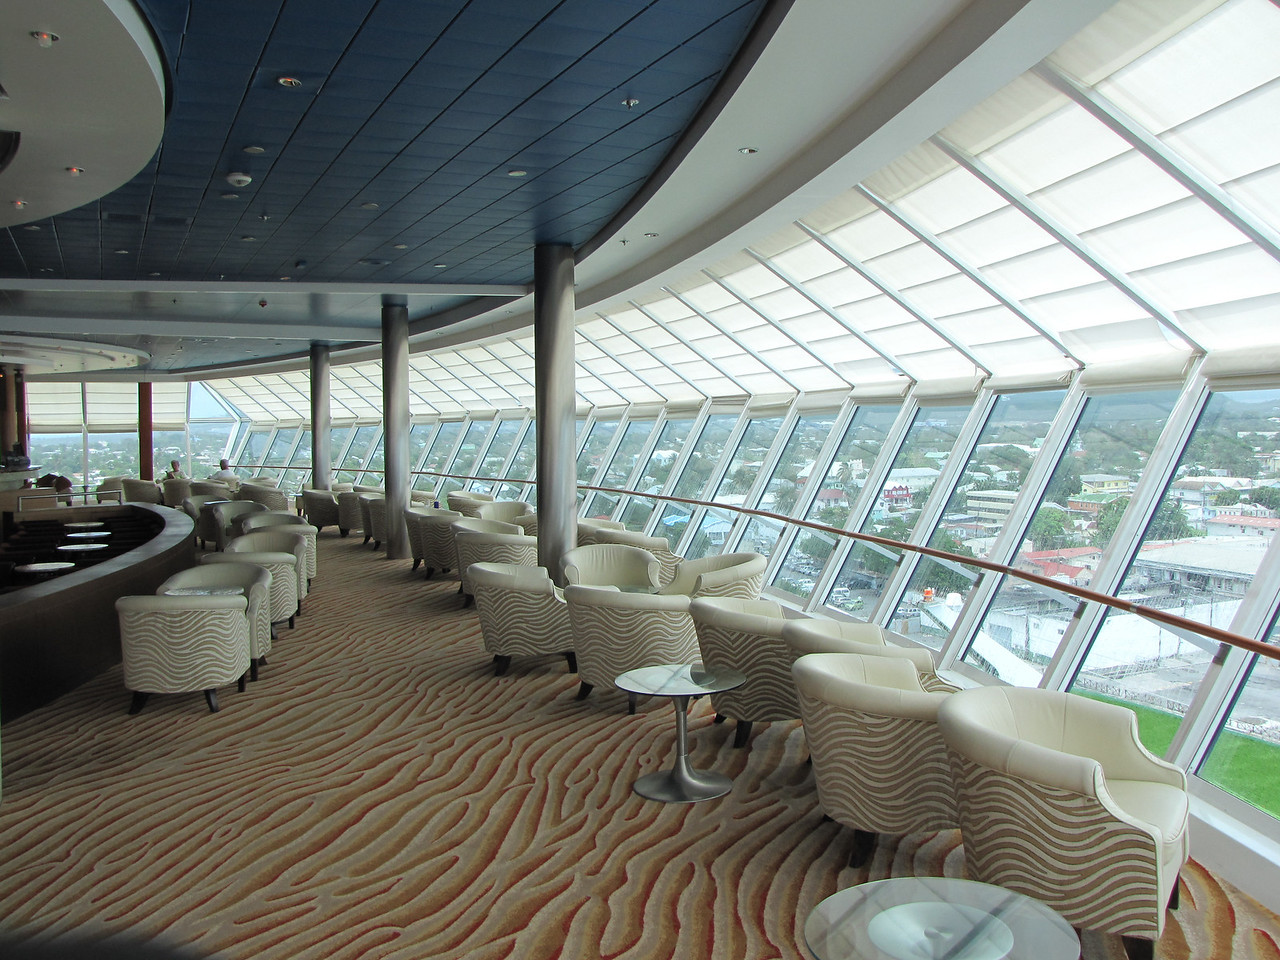 We spent quite a bit of time in these seats since the Captain's Club Elite Member Happy Hour was held here every day.